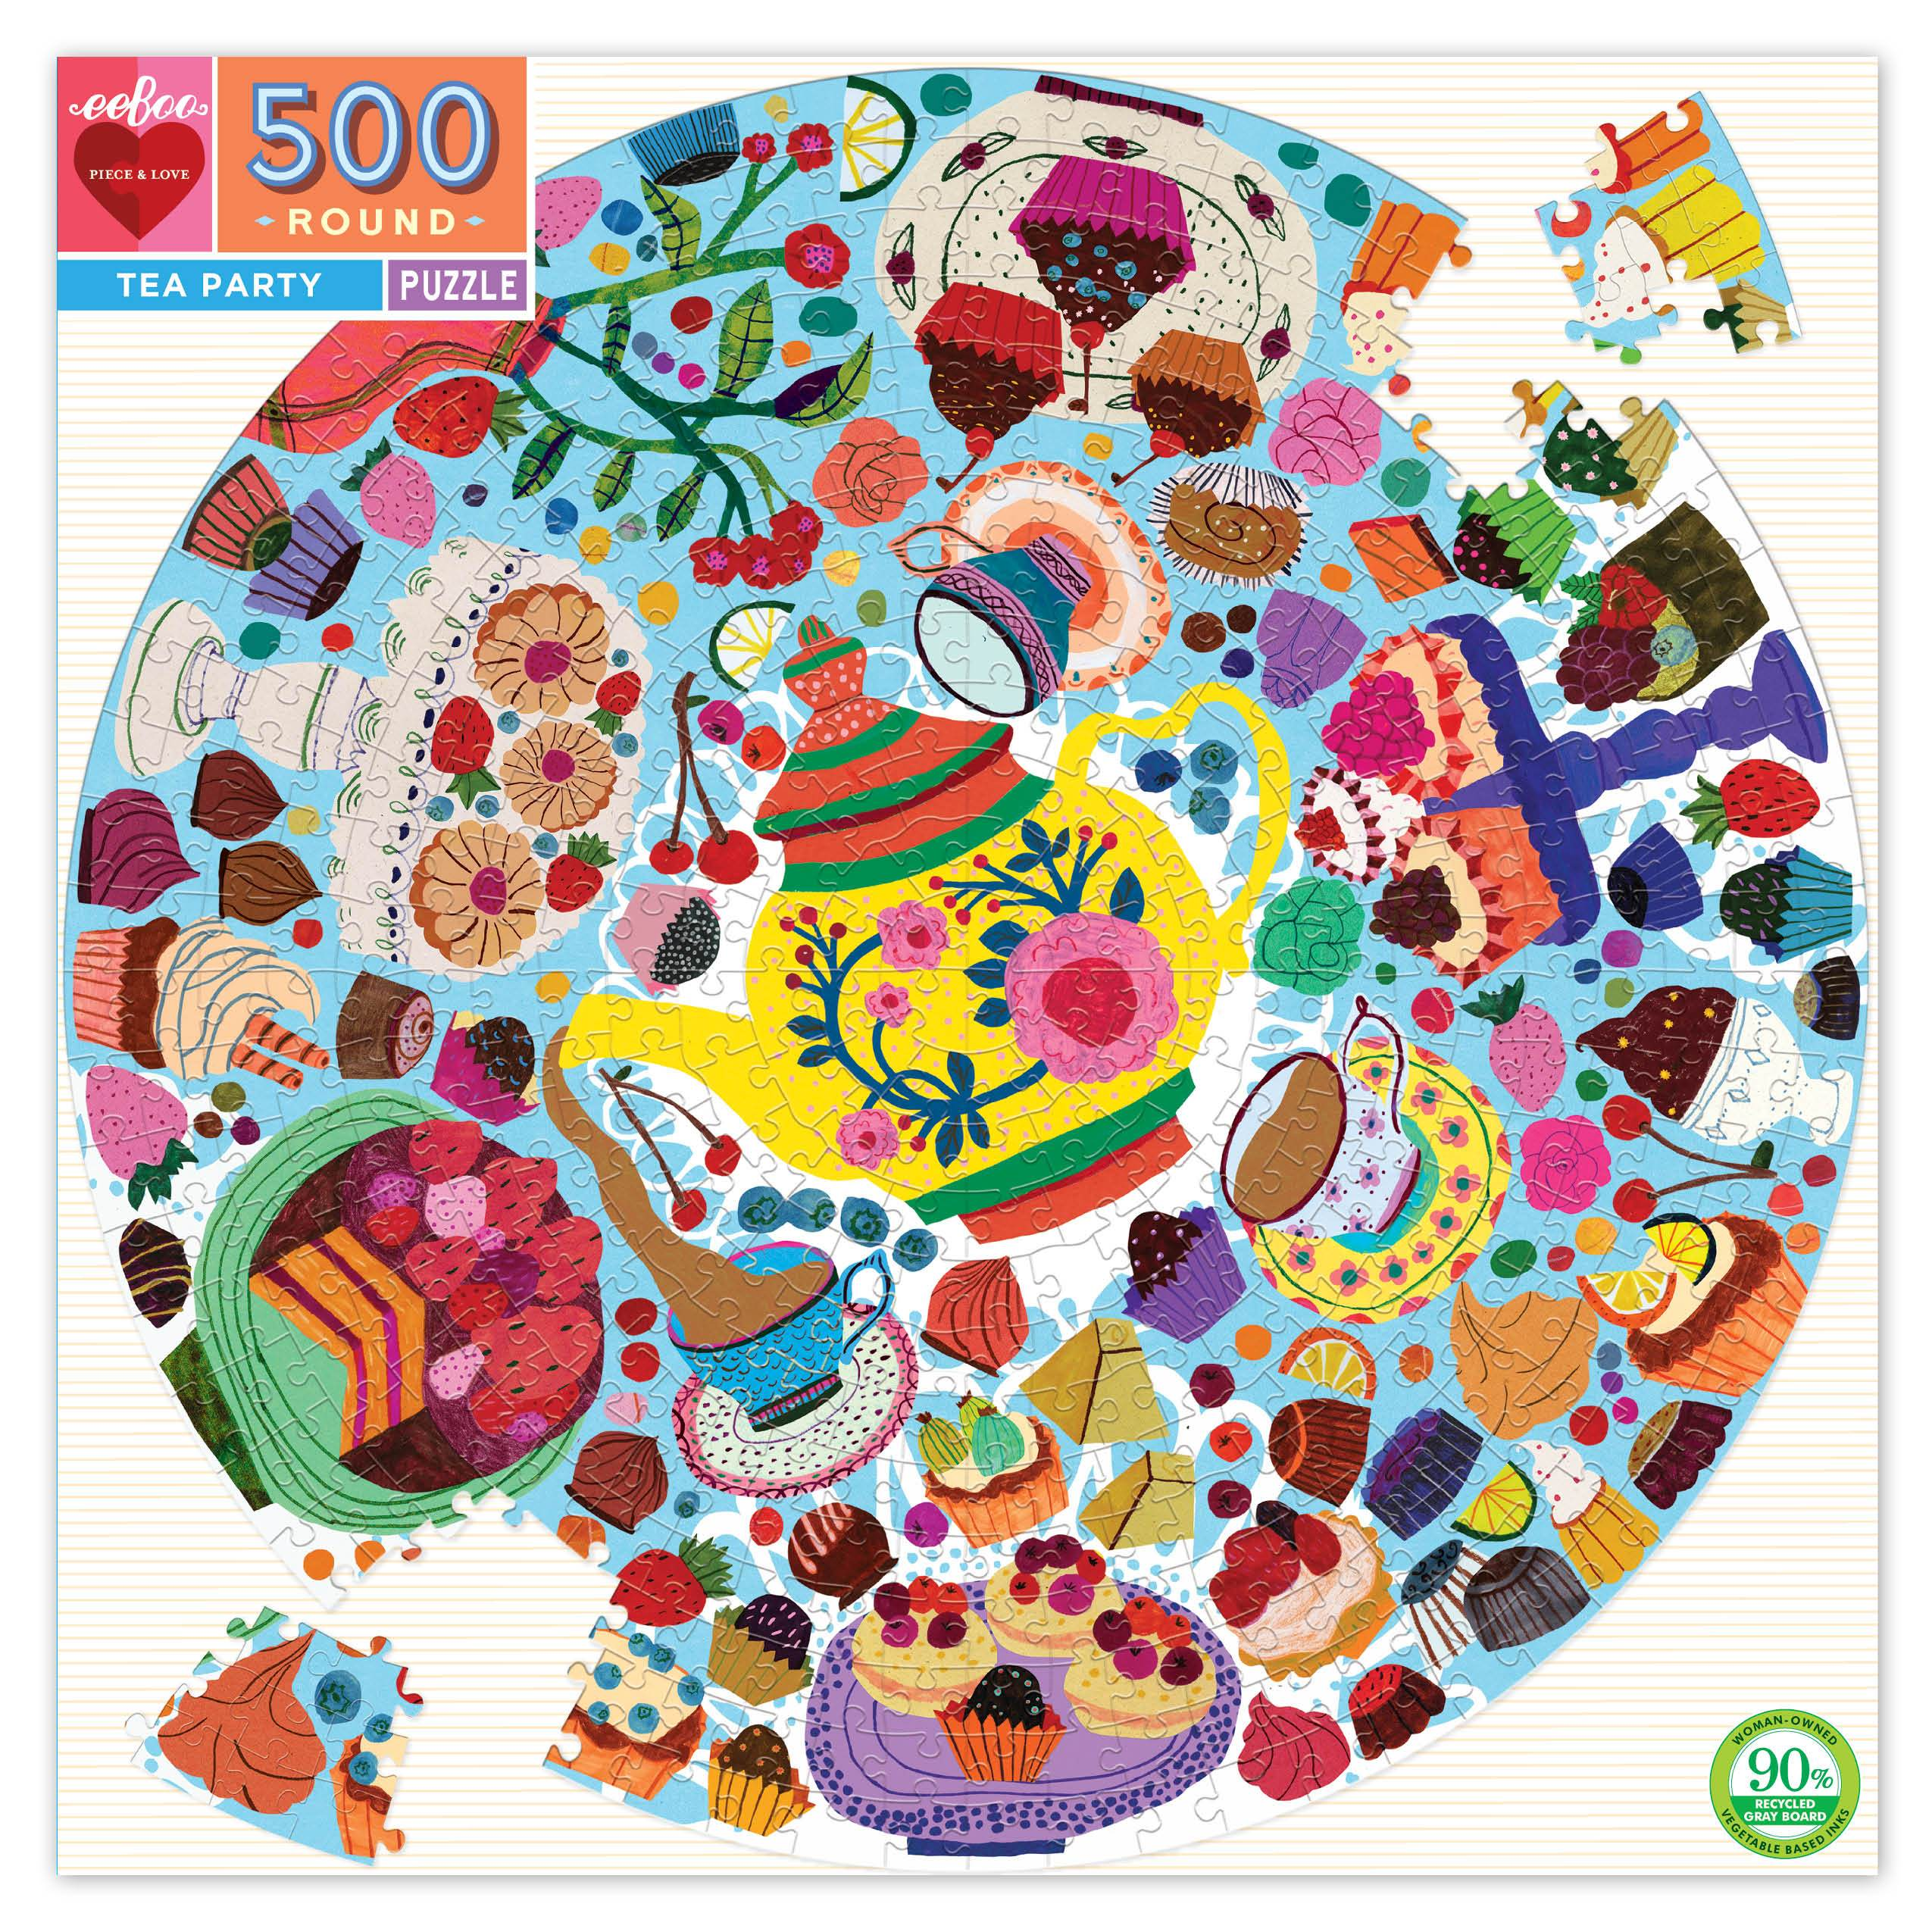 Tea Party 500 piece round